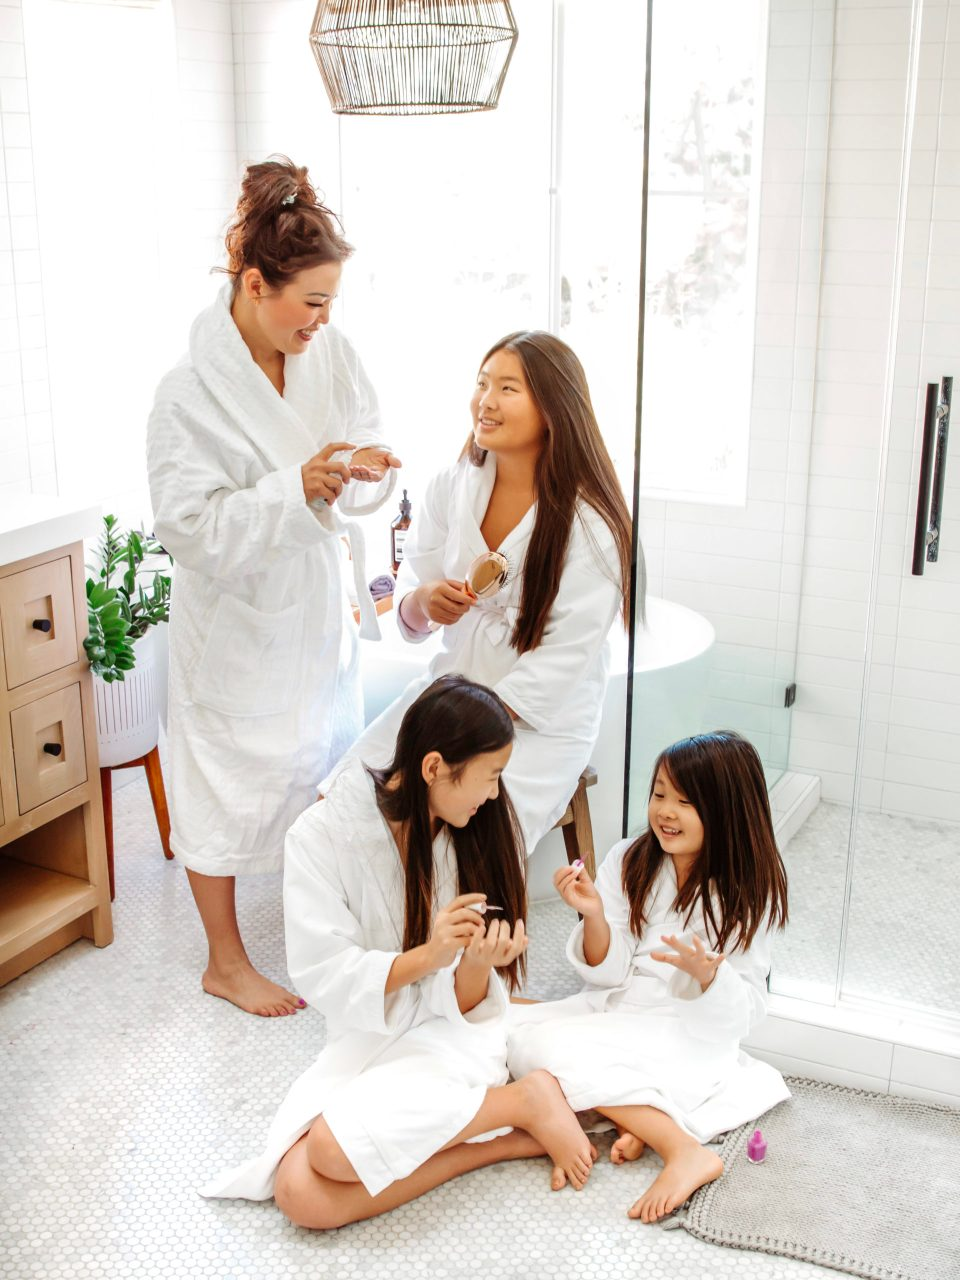 All the Yokota girls got into our spa day!